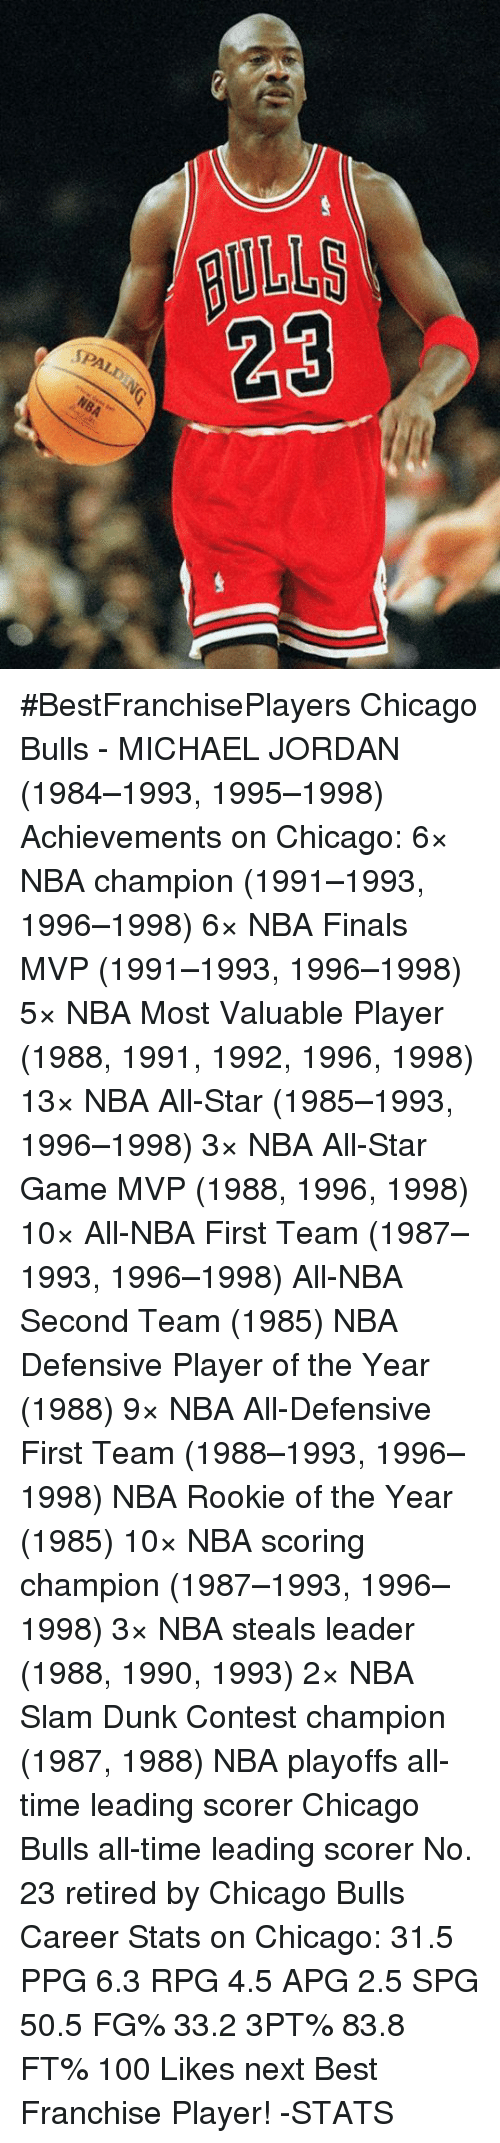 NBA All-Star Game: BULLS  SPALD  NBA #BestFranchisePlayers  Chicago Bulls - MICHAEL JORDAN (1984–1993, 1995–1998)  Achievements on Chicago: 6× NBA champion (1991–1993, 1996–1998) 6× NBA Finals MVP (1991–1993, 1996–1998) 5× NBA Most Valuable Player (1988, 1991, 1992, 1996, 1998) 13× NBA All-Star (1985–1993, 1996–1998) 3× NBA All-Star Game MVP (1988, 1996, 1998) 10× All-NBA First Team (1987–1993, 1996–1998) All-NBA Second Team (1985) NBA Defensive Player of the Year (1988) 9× NBA All-Defensive First Team (1988–1993, 1996–1998) NBA Rookie of the Year (1985) 10× NBA scoring champion (1987–1993, 1996–1998) 3× NBA steals leader (1988, 1990, 1993) 2× NBA Slam Dunk Contest champion (1987, 1988) NBA playoffs all-time leading scorer Chicago Bulls all-time leading scorer No. 23 retired by Chicago Bulls  Career Stats on Chicago: 31.5 PPG 6.3 RPG 4.5 APG 2.5 SPG 50.5 FG% 33.2 3PT% 83.8 FT%  100 Likes next Best Franchise Player!  -STATS